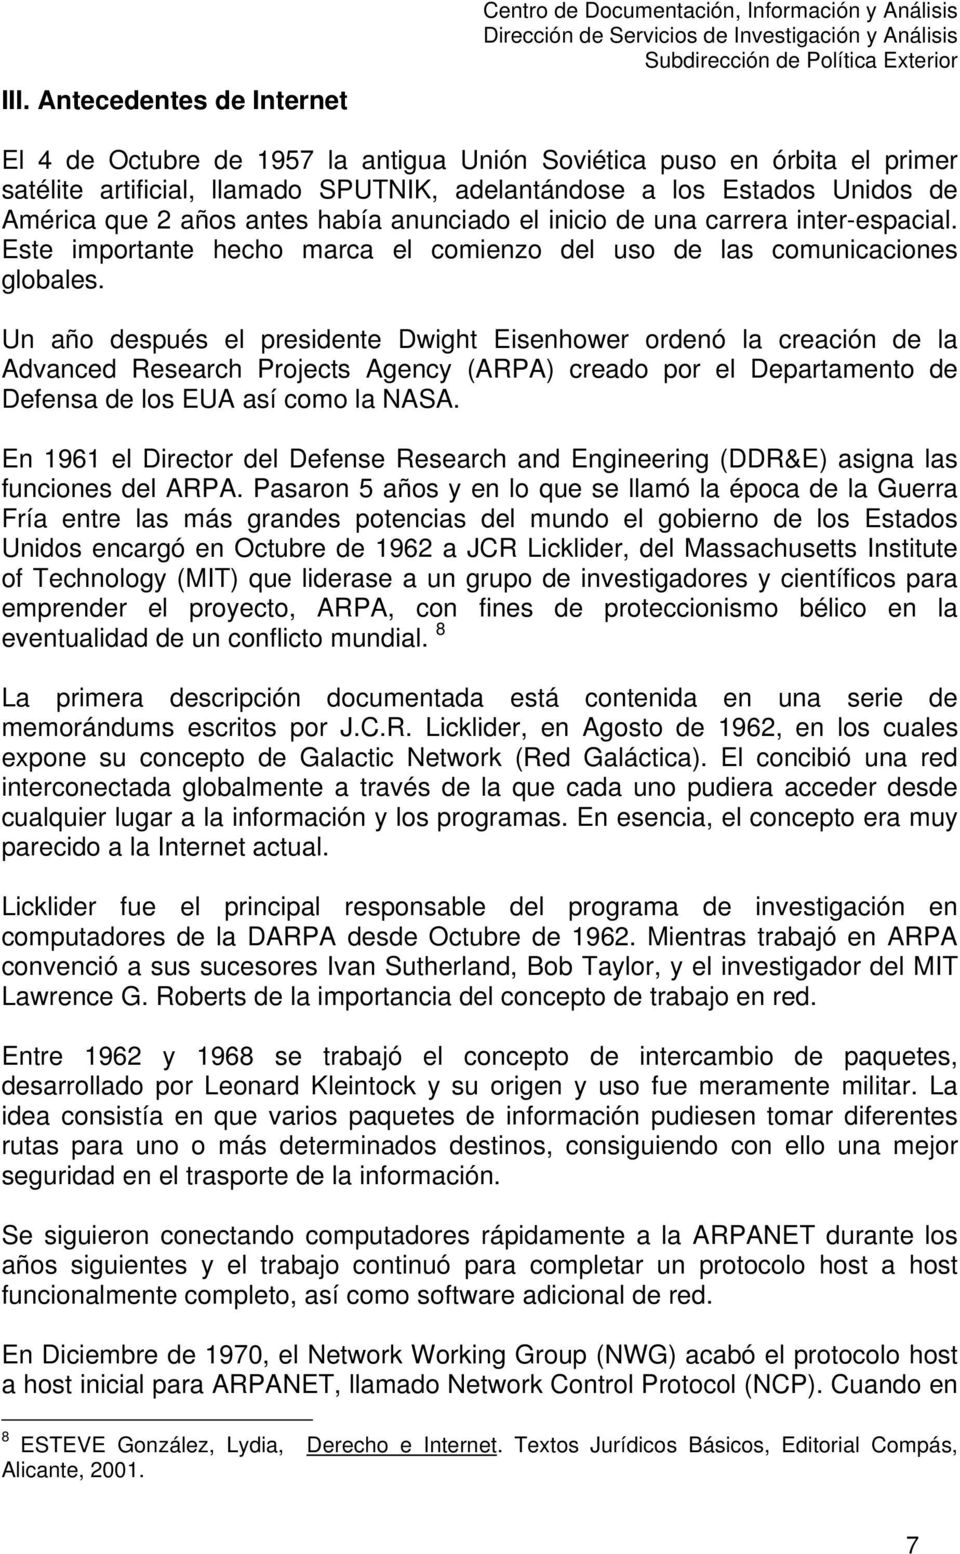 Un año después el presidente Dwight Eisenhower ordenó la creación de la Advanced Research Projects Agency (ARPA) creado por el Departamento de Defensa de los EUA así como la NASA.